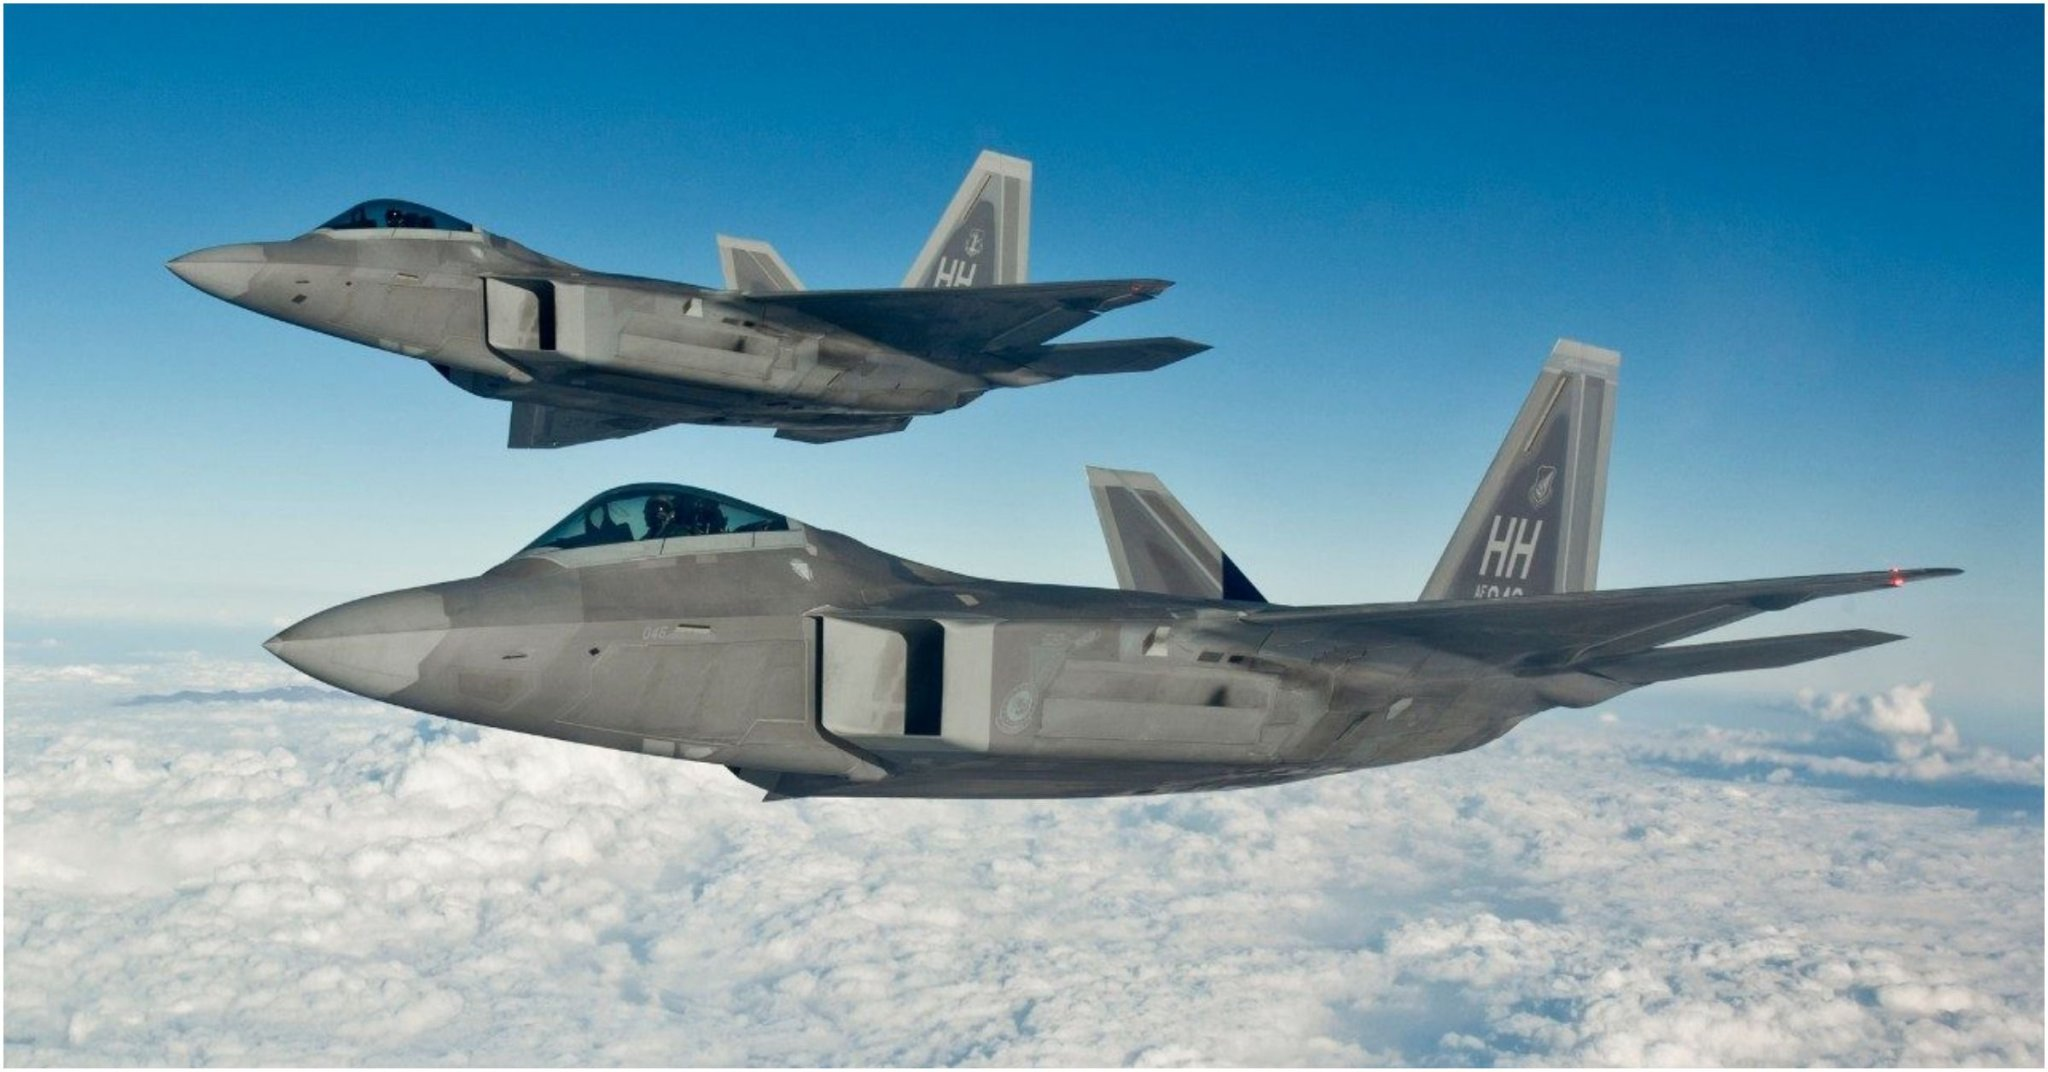 These Are The Coolest Jets In The US Air Force's Arsenal